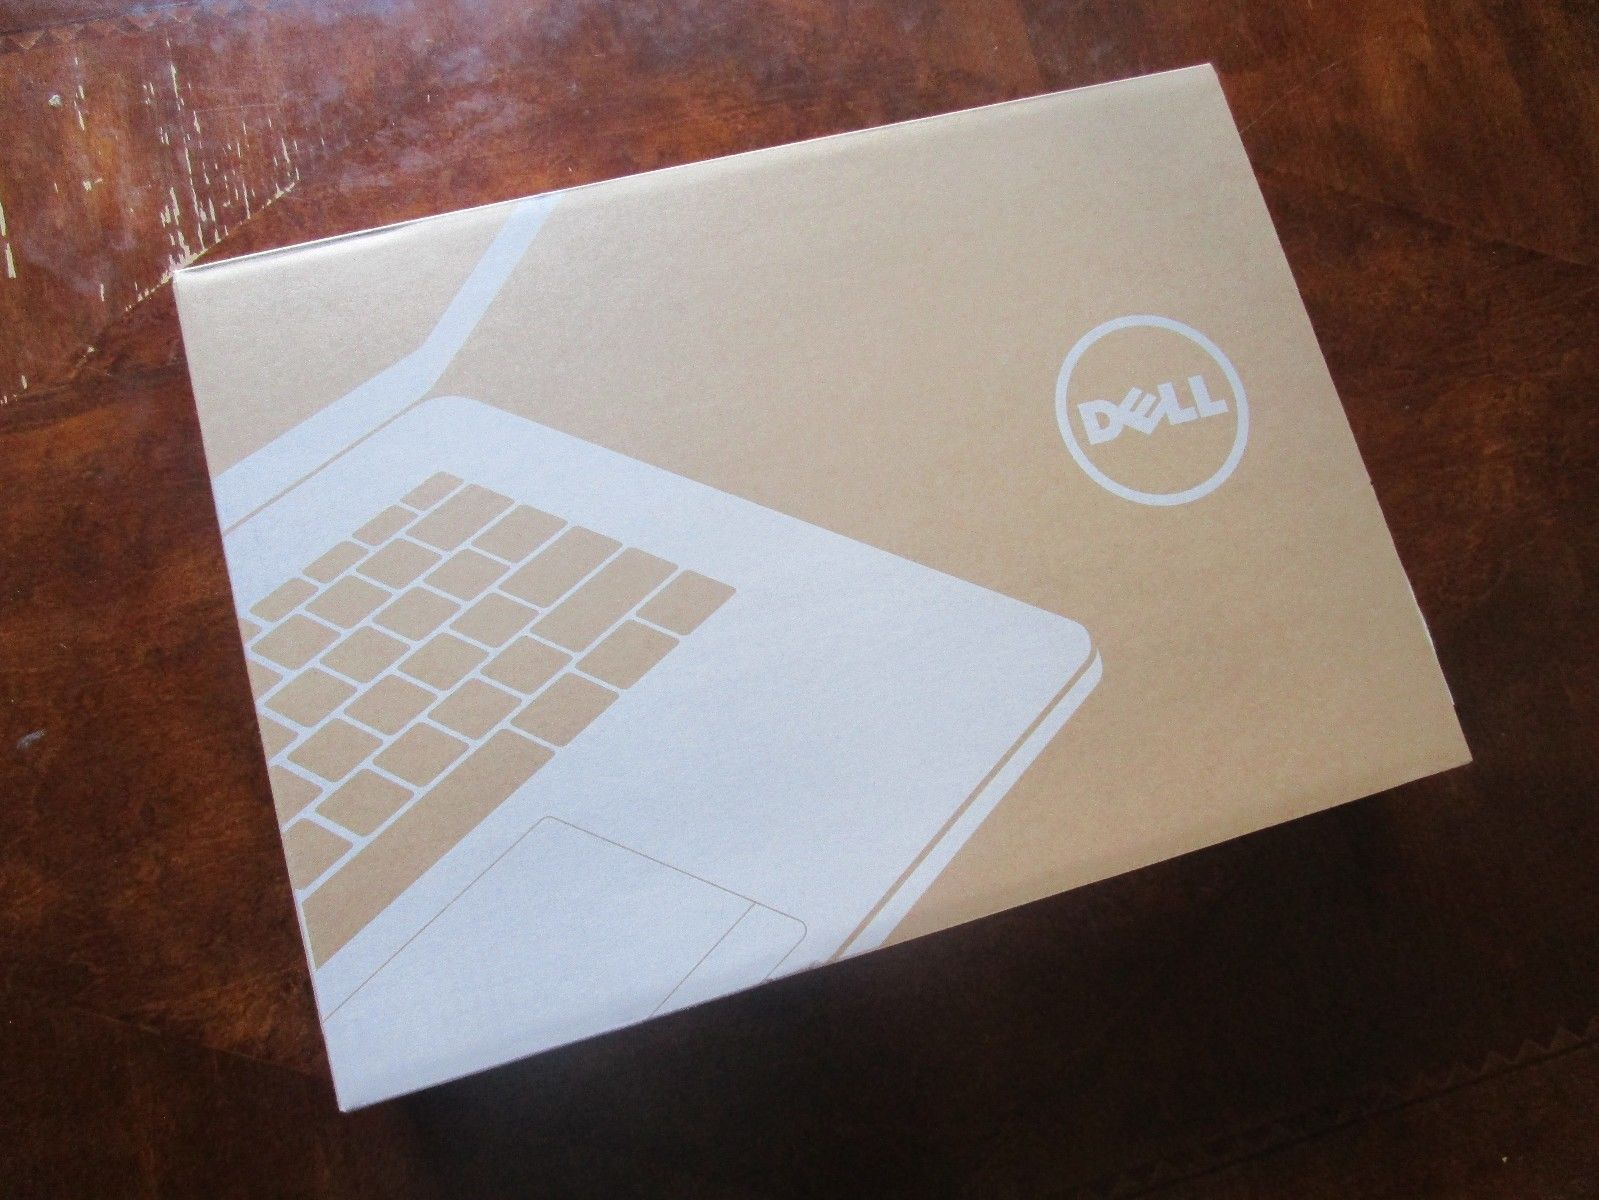 """Dell Inspiron 15.6"""" FHD Touch Screen Laptop Core i5 8GB RAM 1TB HDD - Warranty"""